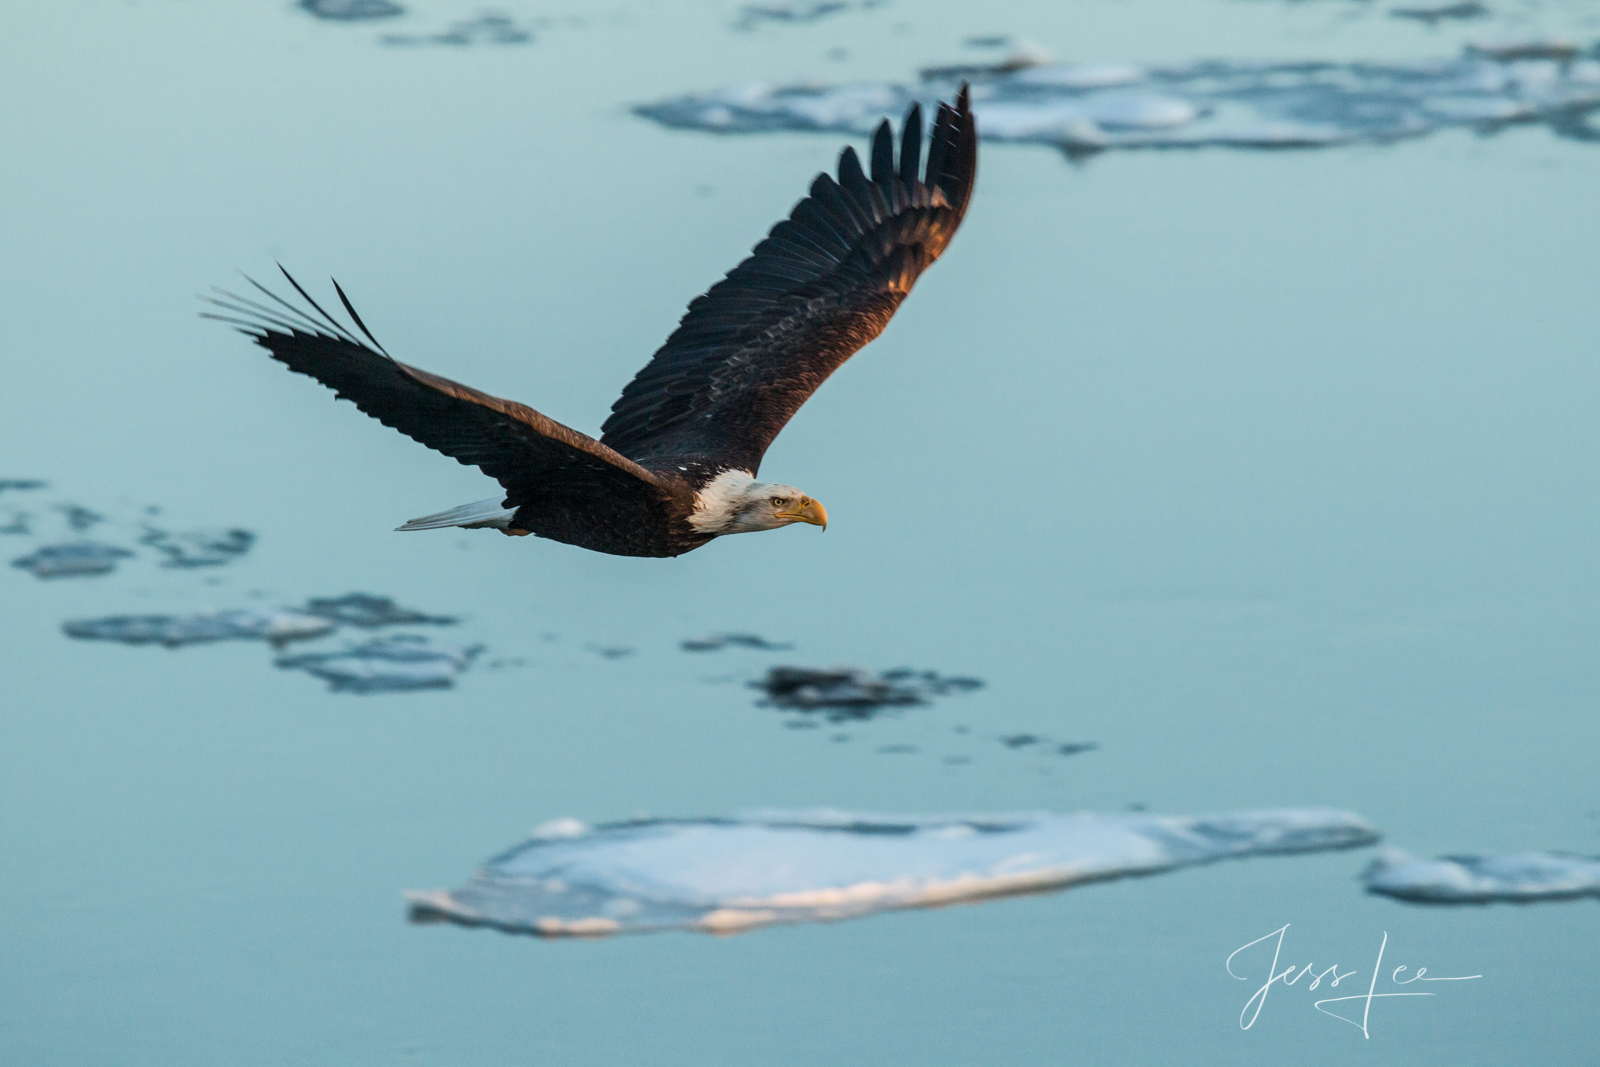 Bring home the power and beauty of the amazing fine art American Bald Eagle photograph Over the Ice by Jess Lee from his Wildlife...